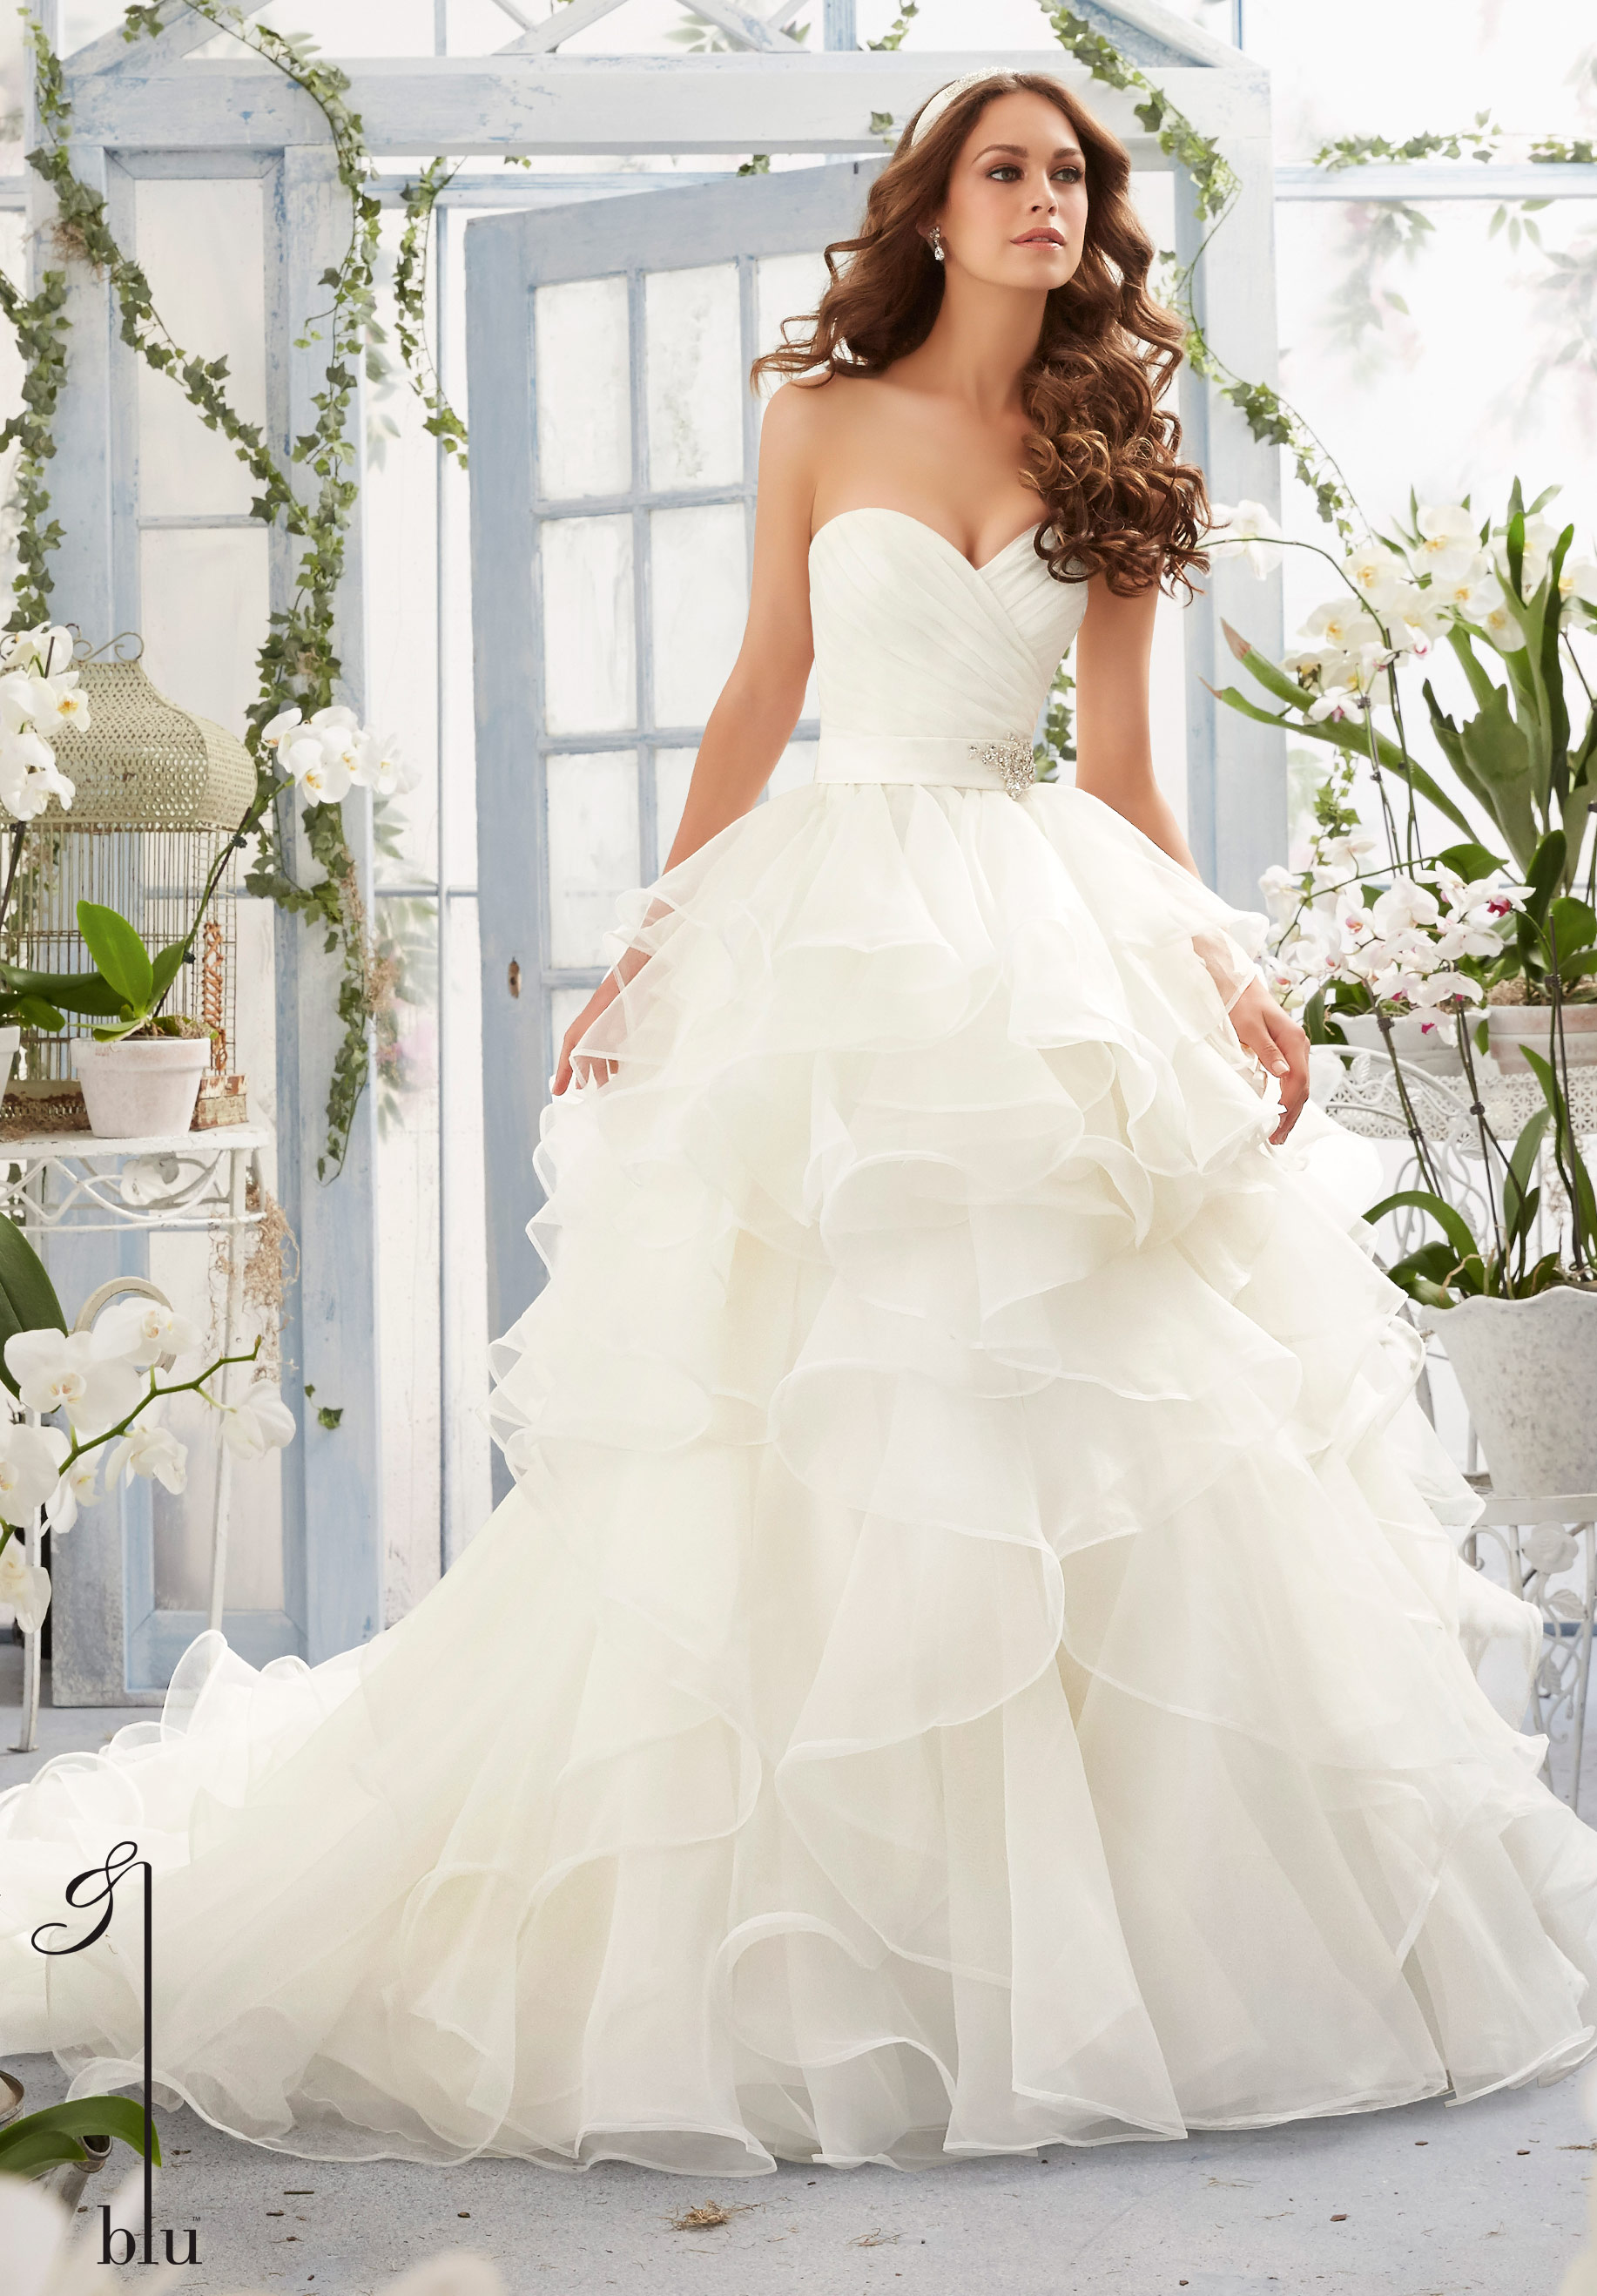 Wedding dresses mori lee style for Mori lee wedding dresses